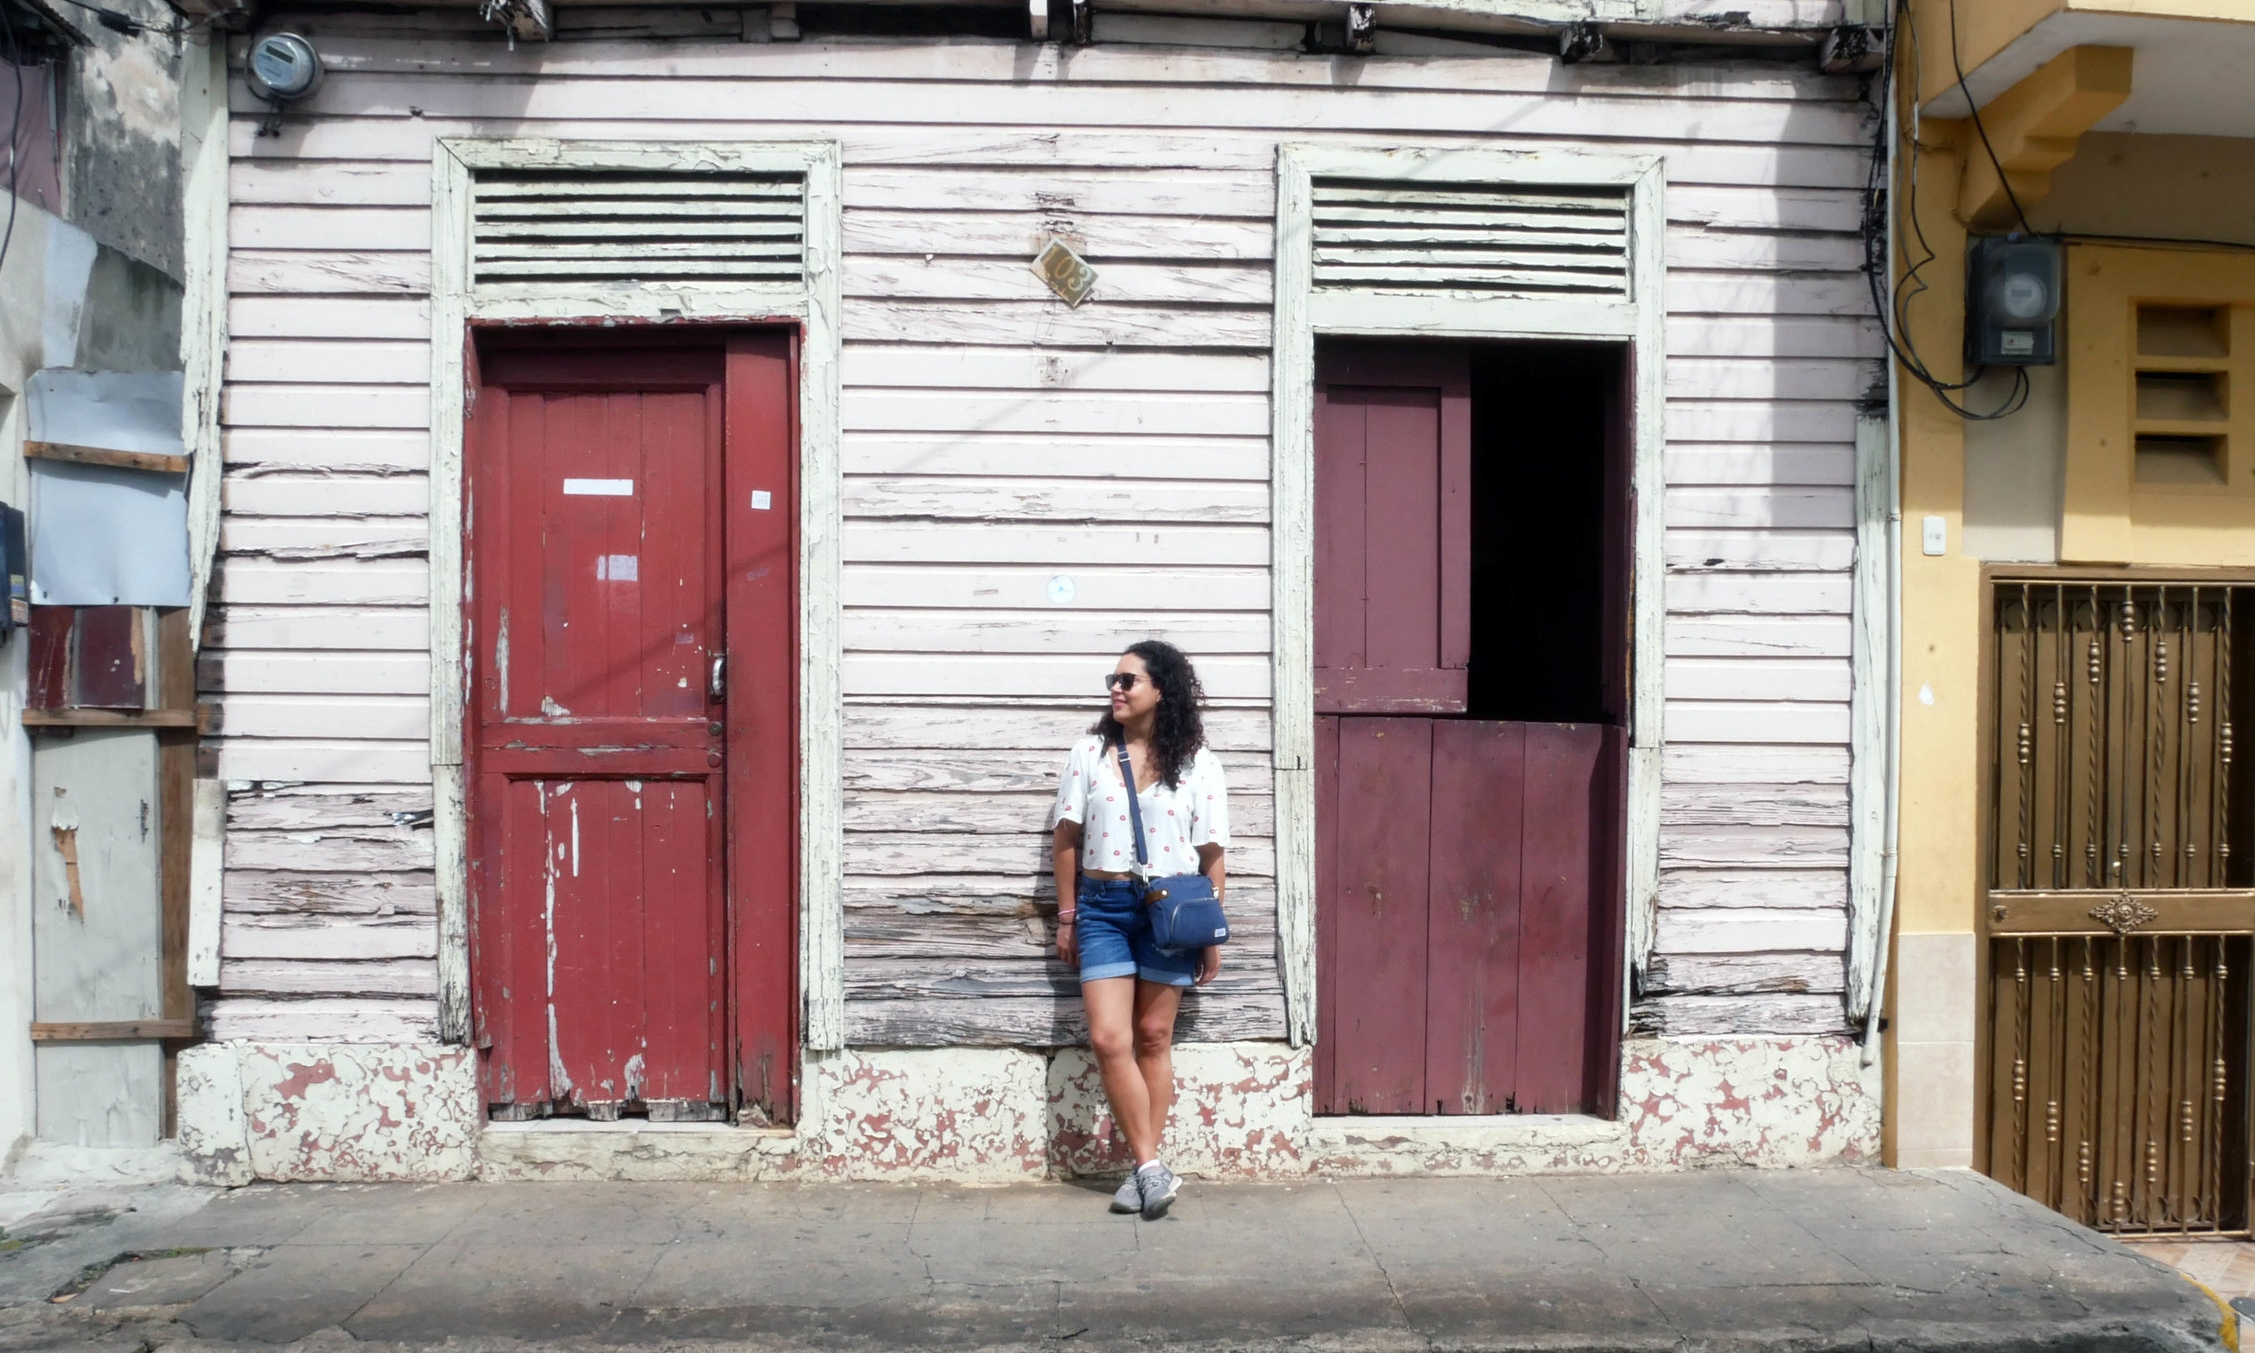 Posing with Santo Domingo's colourful streets